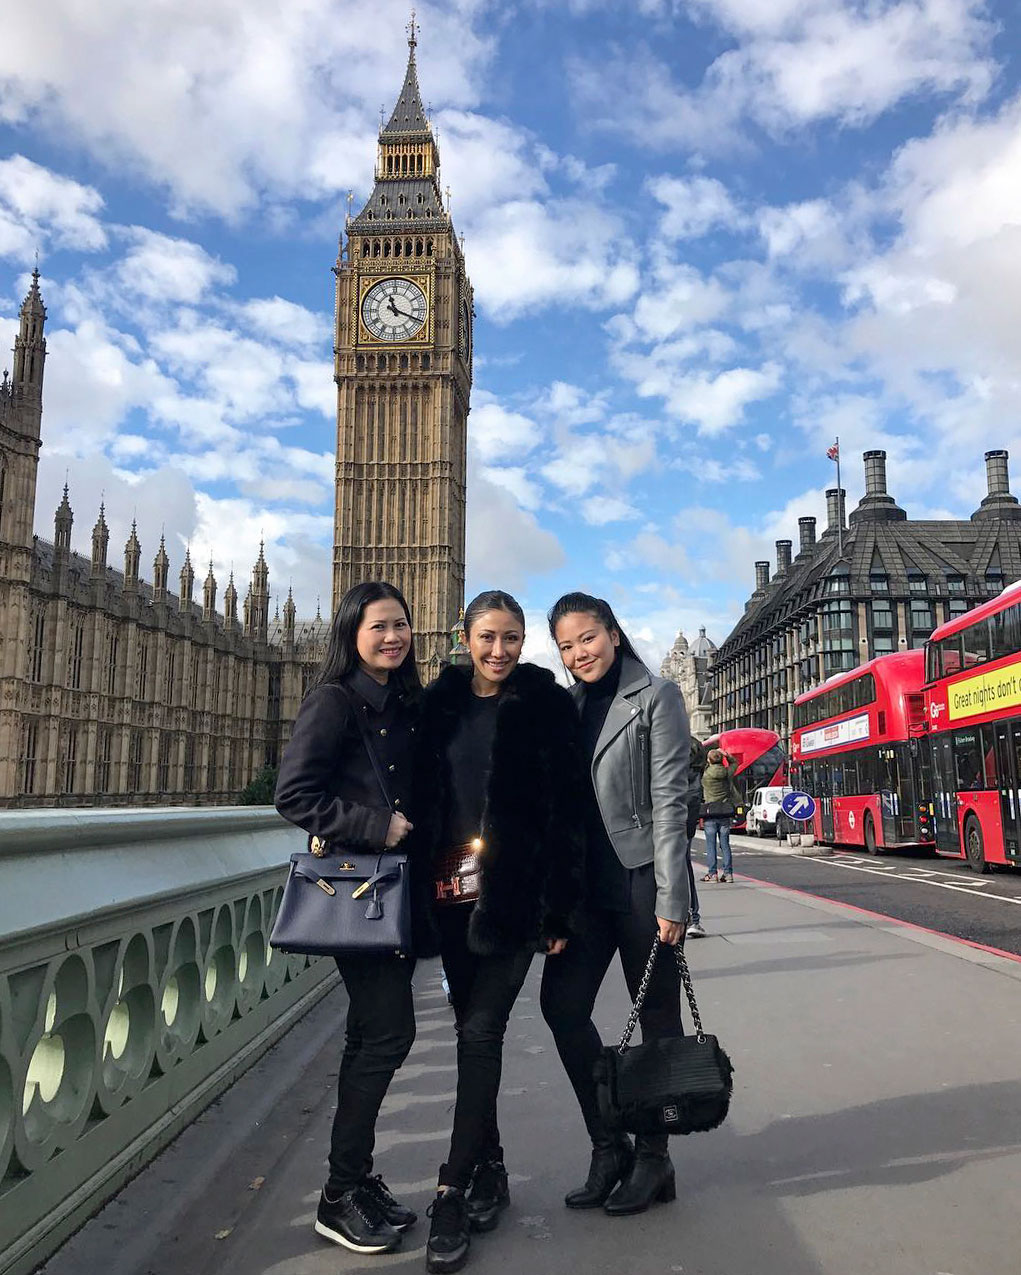 Posing in front of the Houses of Parliament: Neth Vichhuna (right) pictured with her aunts Hun Chantha (center) and Hun Chanthou (left) in London.